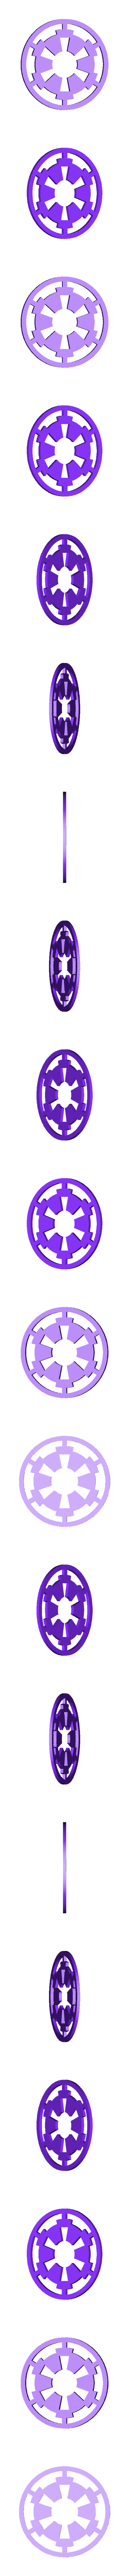 Imperial seal.stl Download free STL file Star Wars Imperial Seal (Scaleable) • 3D printing template, Bountyhunterxx5